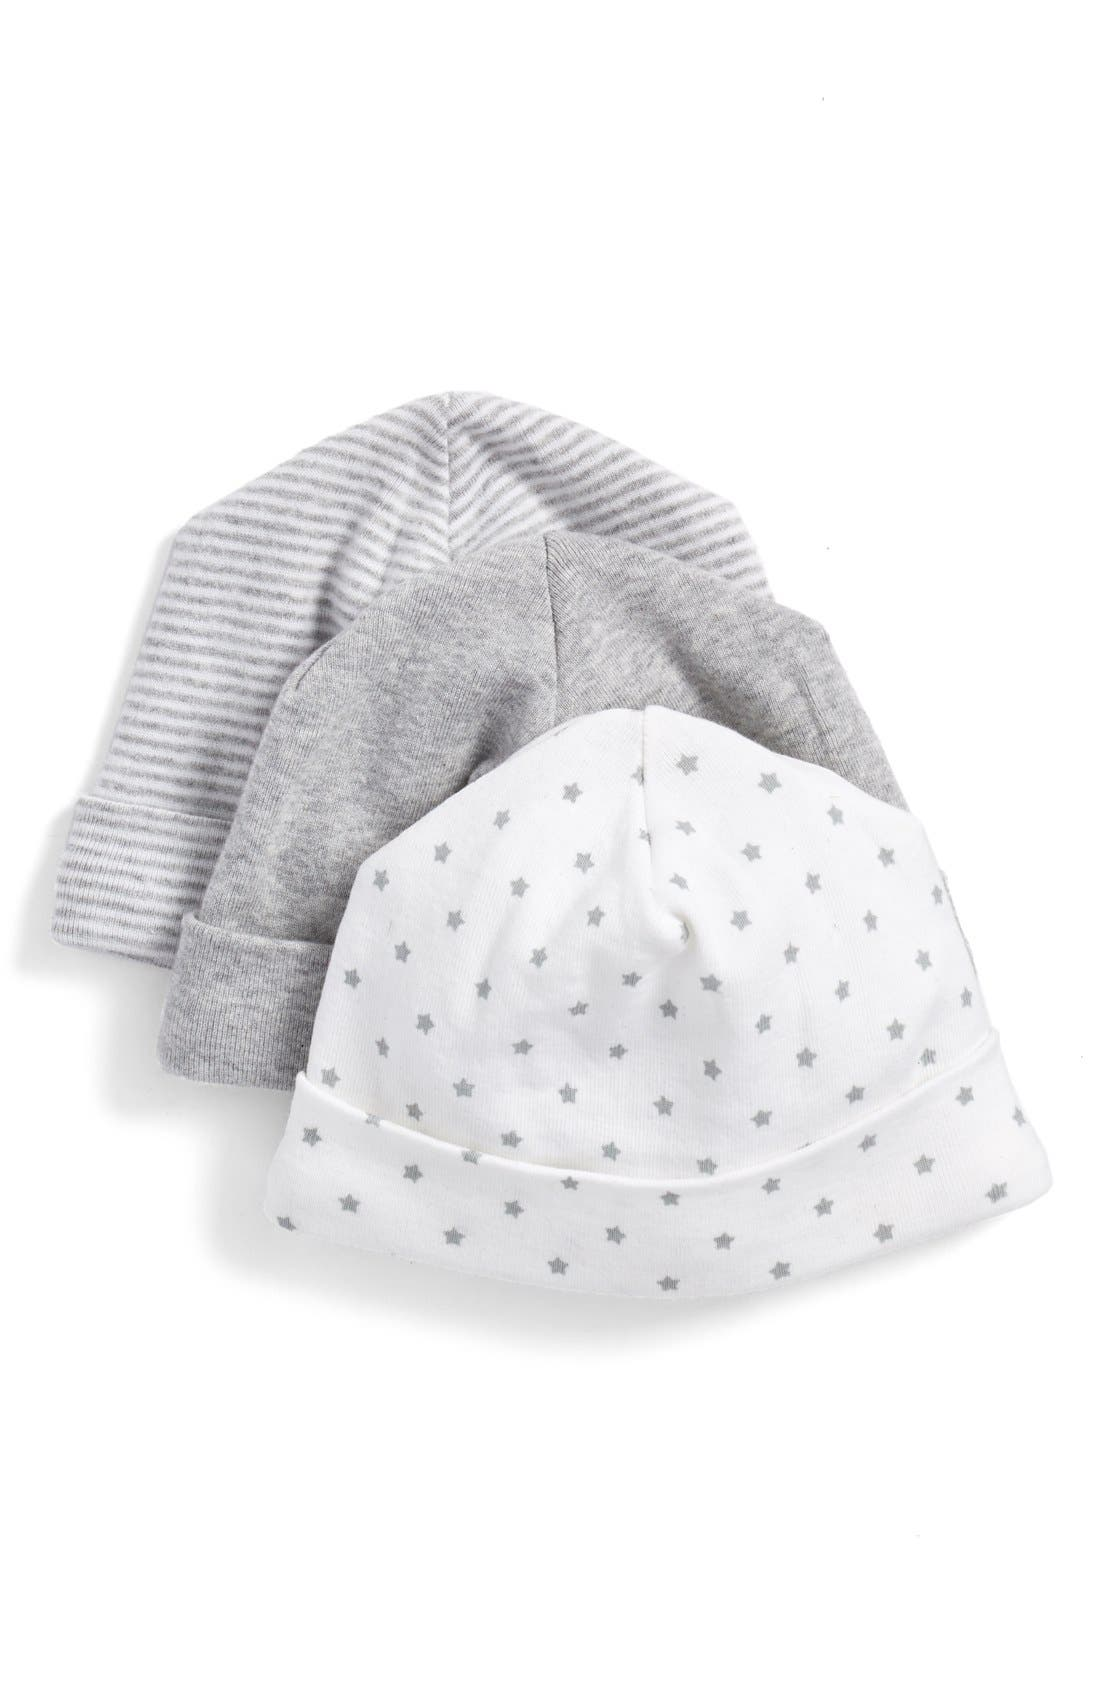 NORDSTROM BABY, Cotton Hats, Main thumbnail 1, color, GREY ASH HEATHER PACK